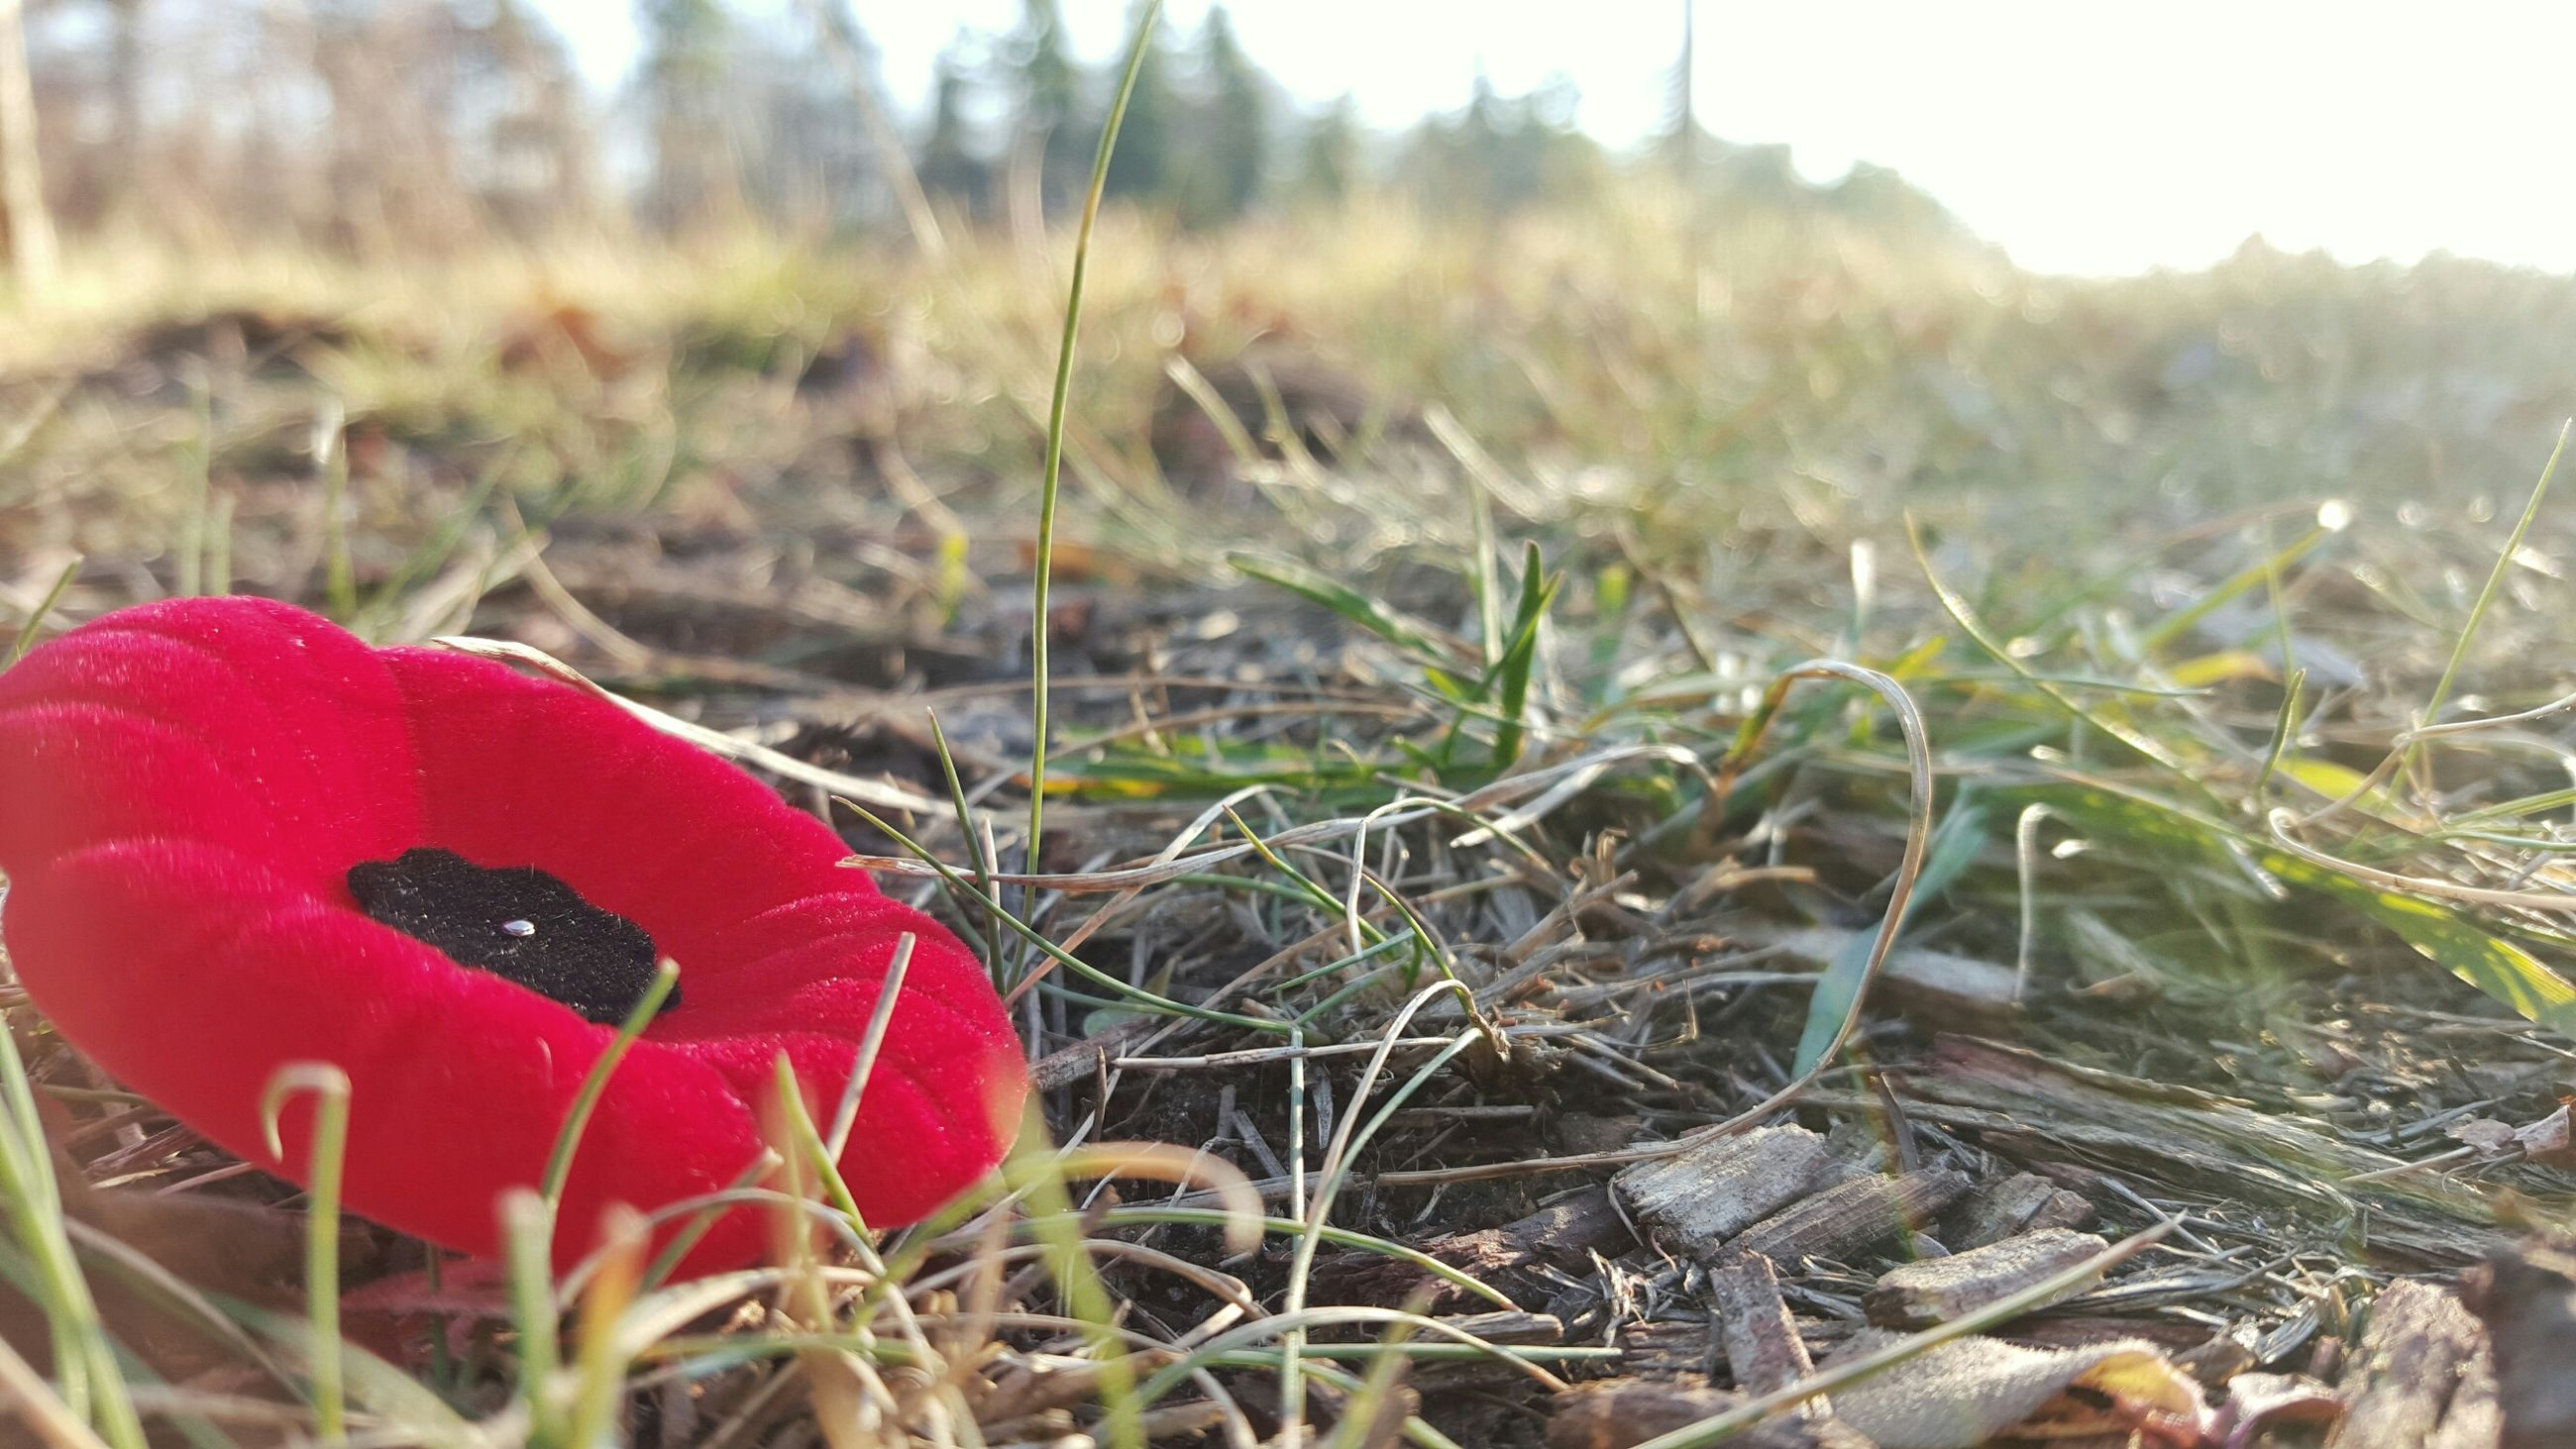 red, grass, focus on foreground, close-up, field, growth, nature, plant, beauty in nature, selective focus, poppy, tranquility, outdoors, day, fragility, stem, mushroom, freshness, no people, growing